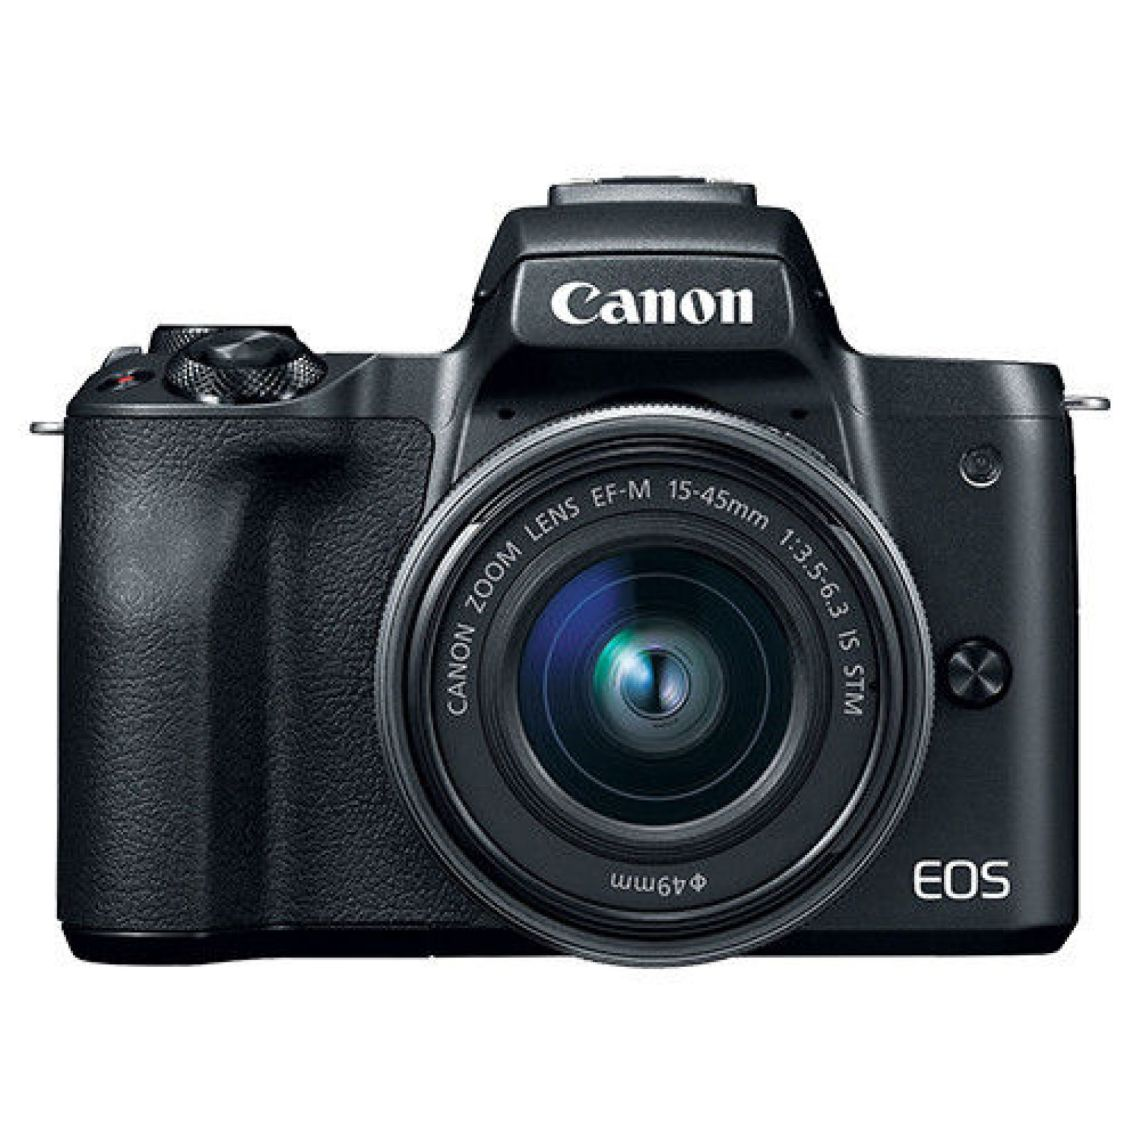 Canon EOS M50 Mirrorless Digital Camera with 15-45mm EF-M IS STM Lens Black | eBay